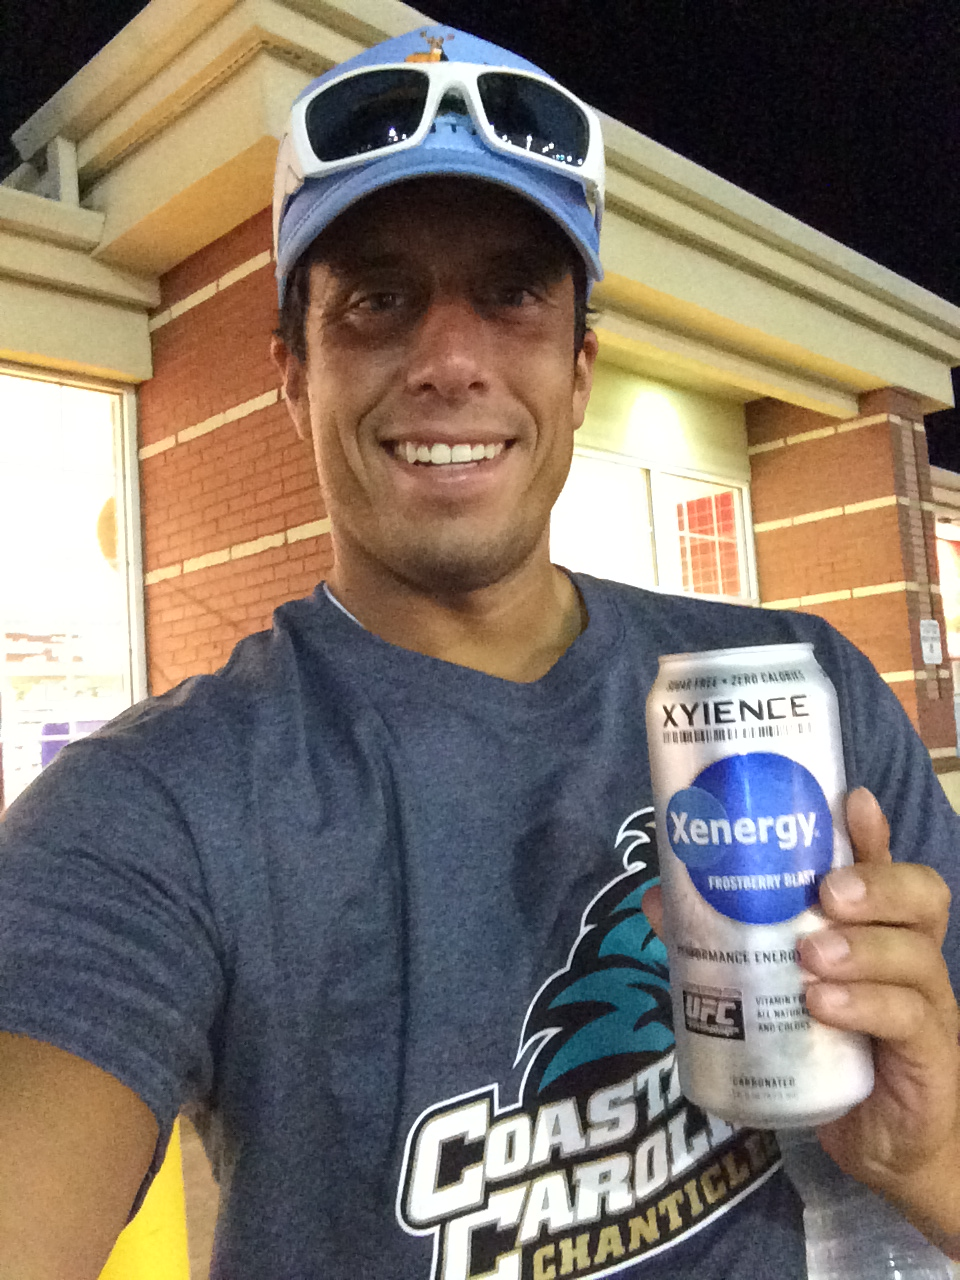 I was so excited when I found Xyience that I had to take a selfie with it outside of the gas station.